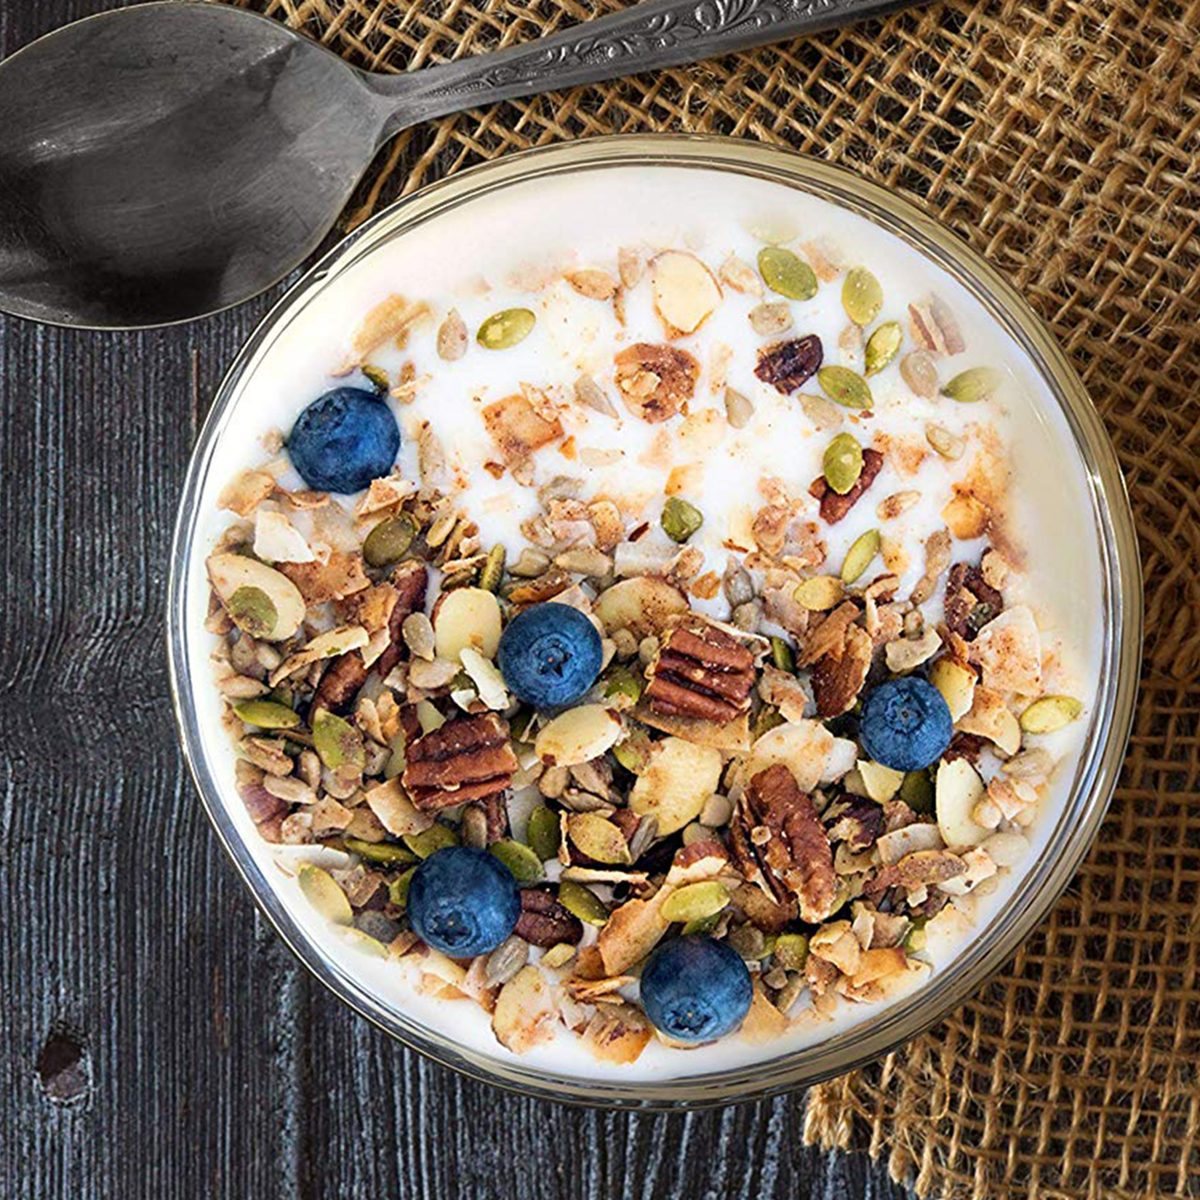 Low Karb - Keto Blueberry Nut Granola Healthy Breakfast Cereal - Low Carb Snacks & Food - 3g Net Carbs - Almonds, Pecans, Coconut and more